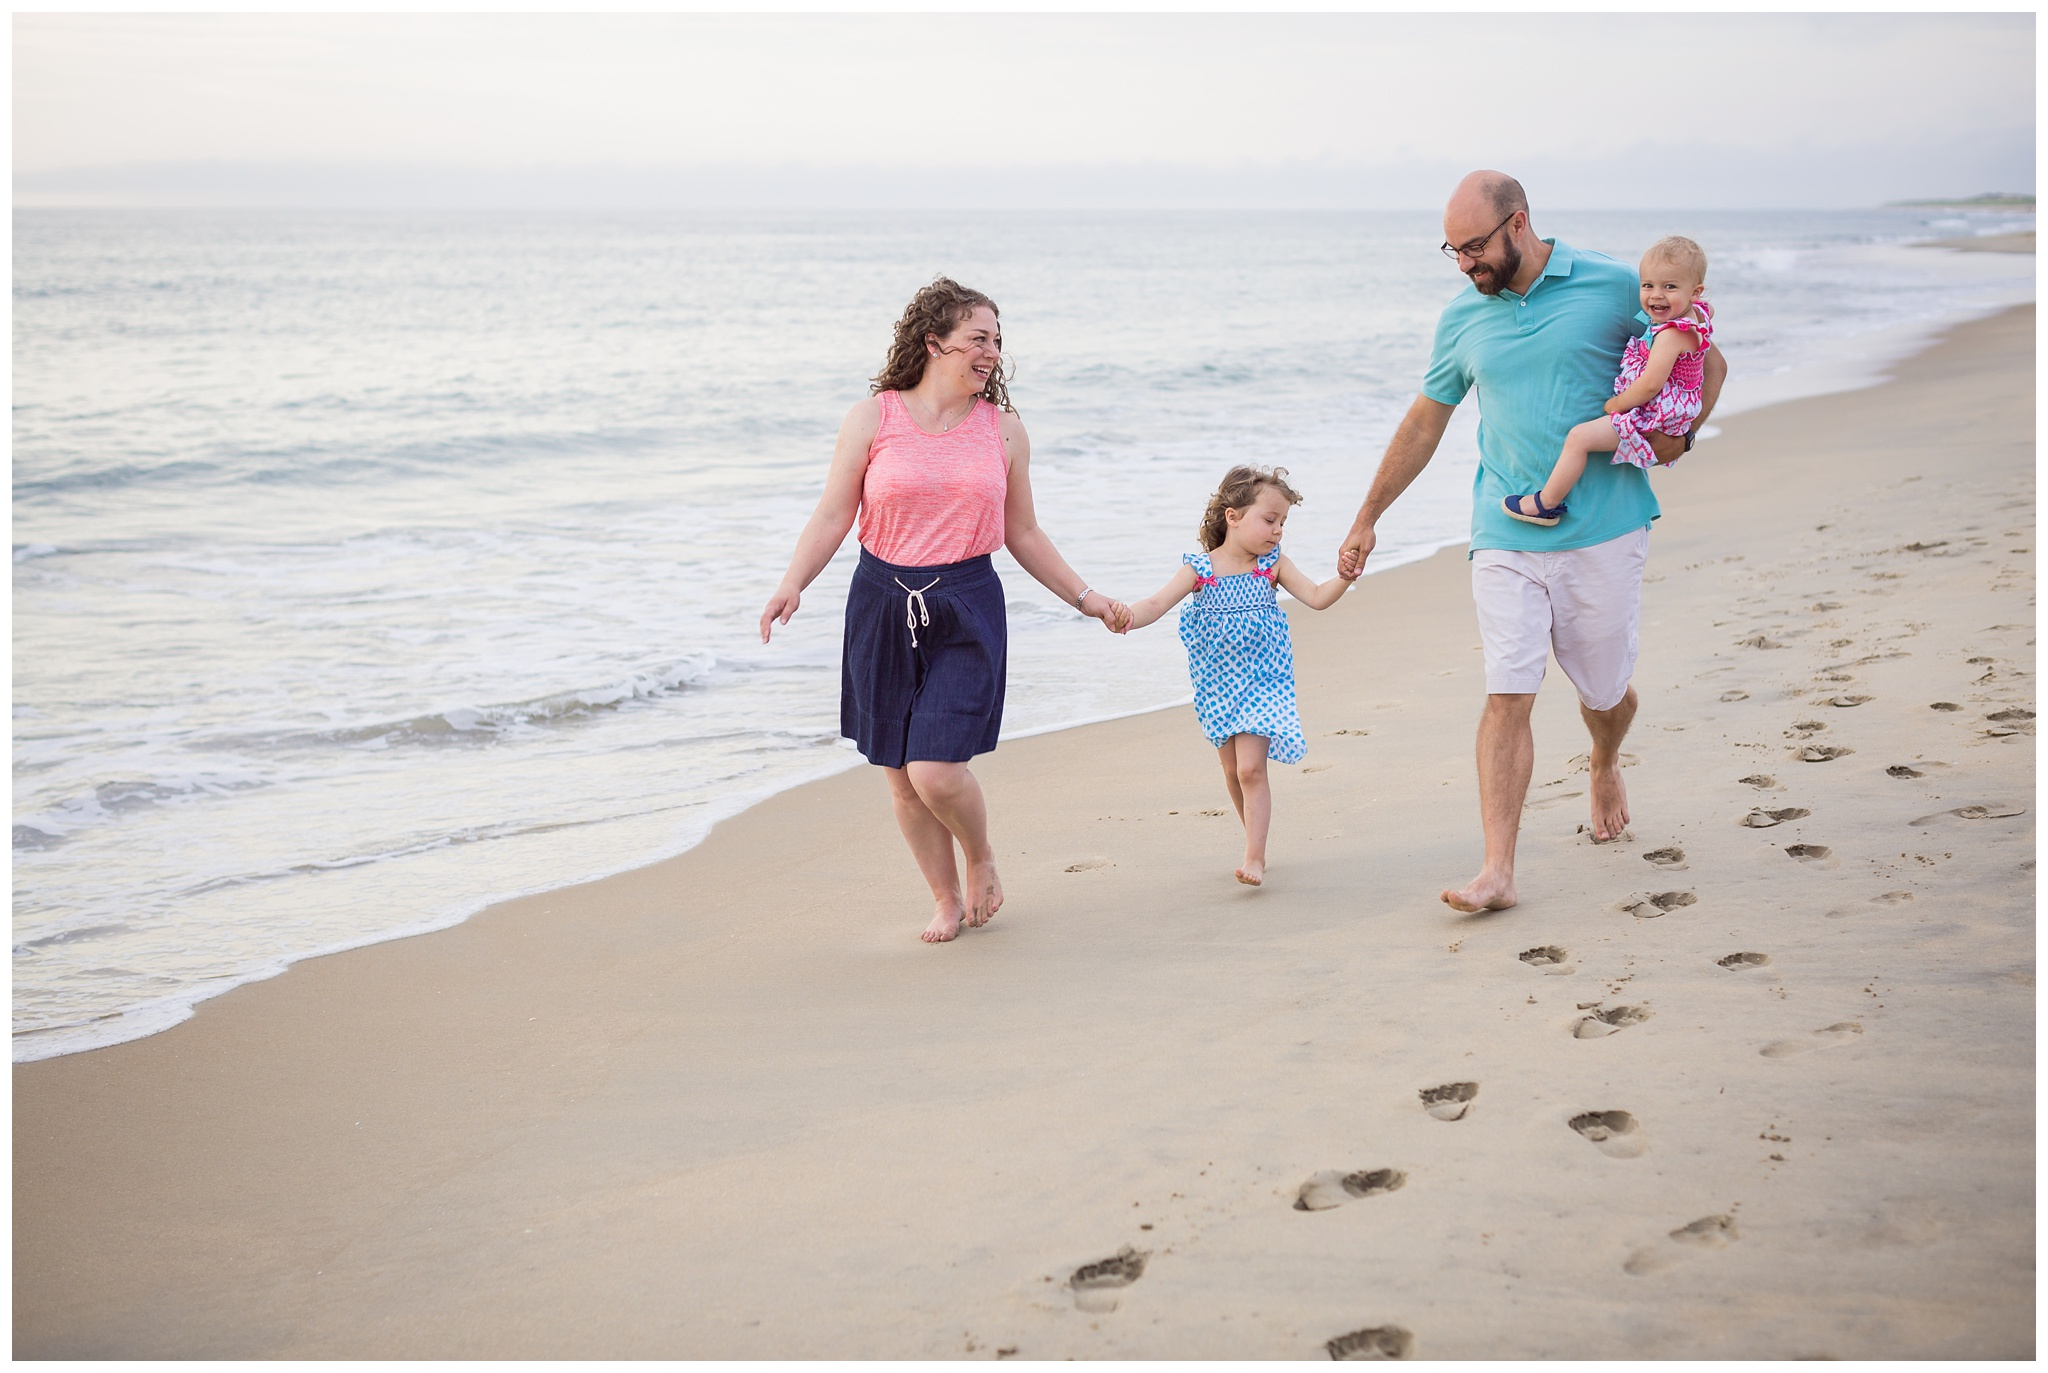 Virginia-Beach-Family-Photographer-5.jpg